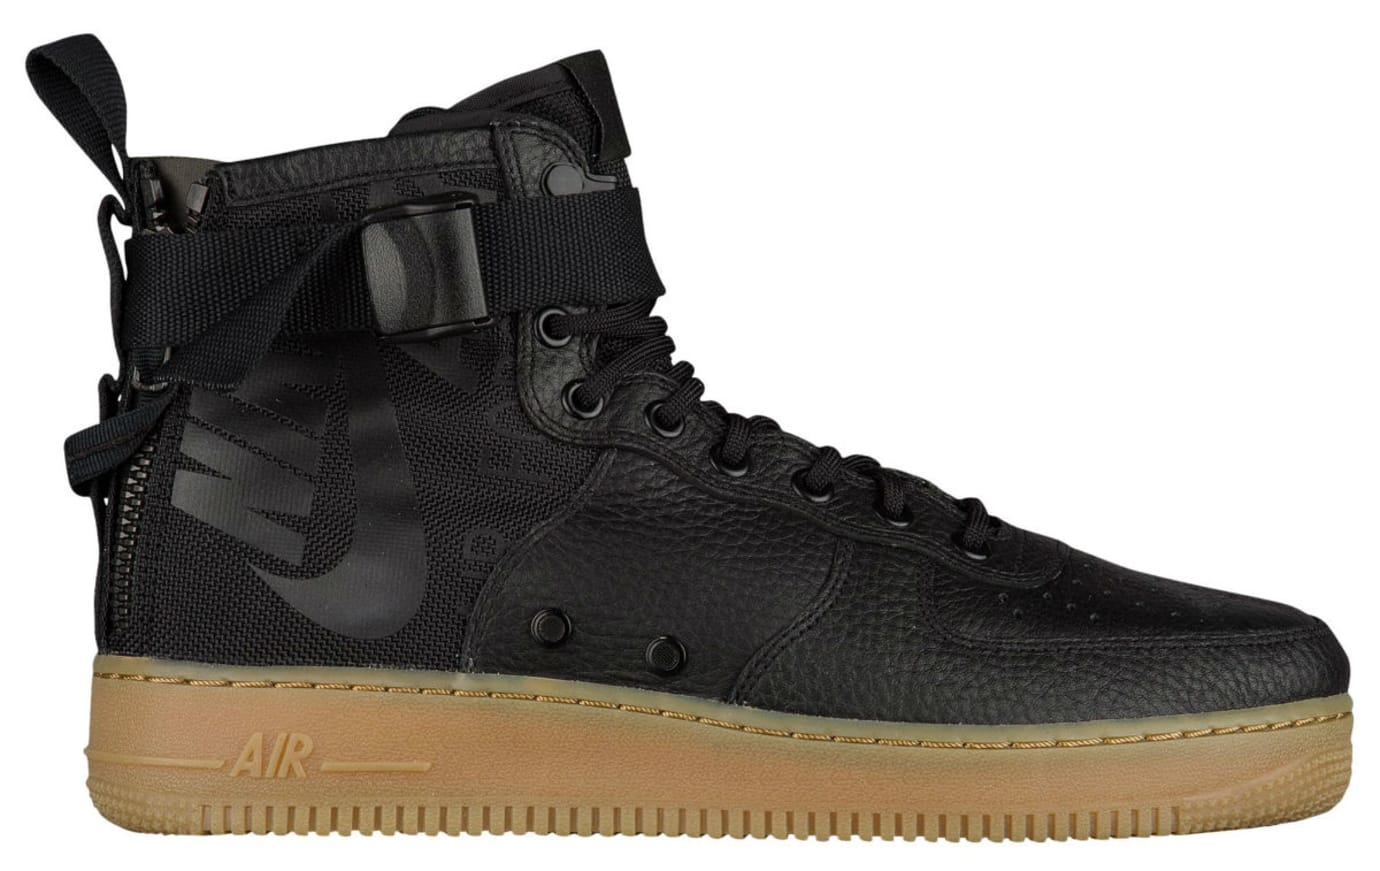 Nike SF Air Force 1 Mid Black Gum Release Date Profile 917753-003